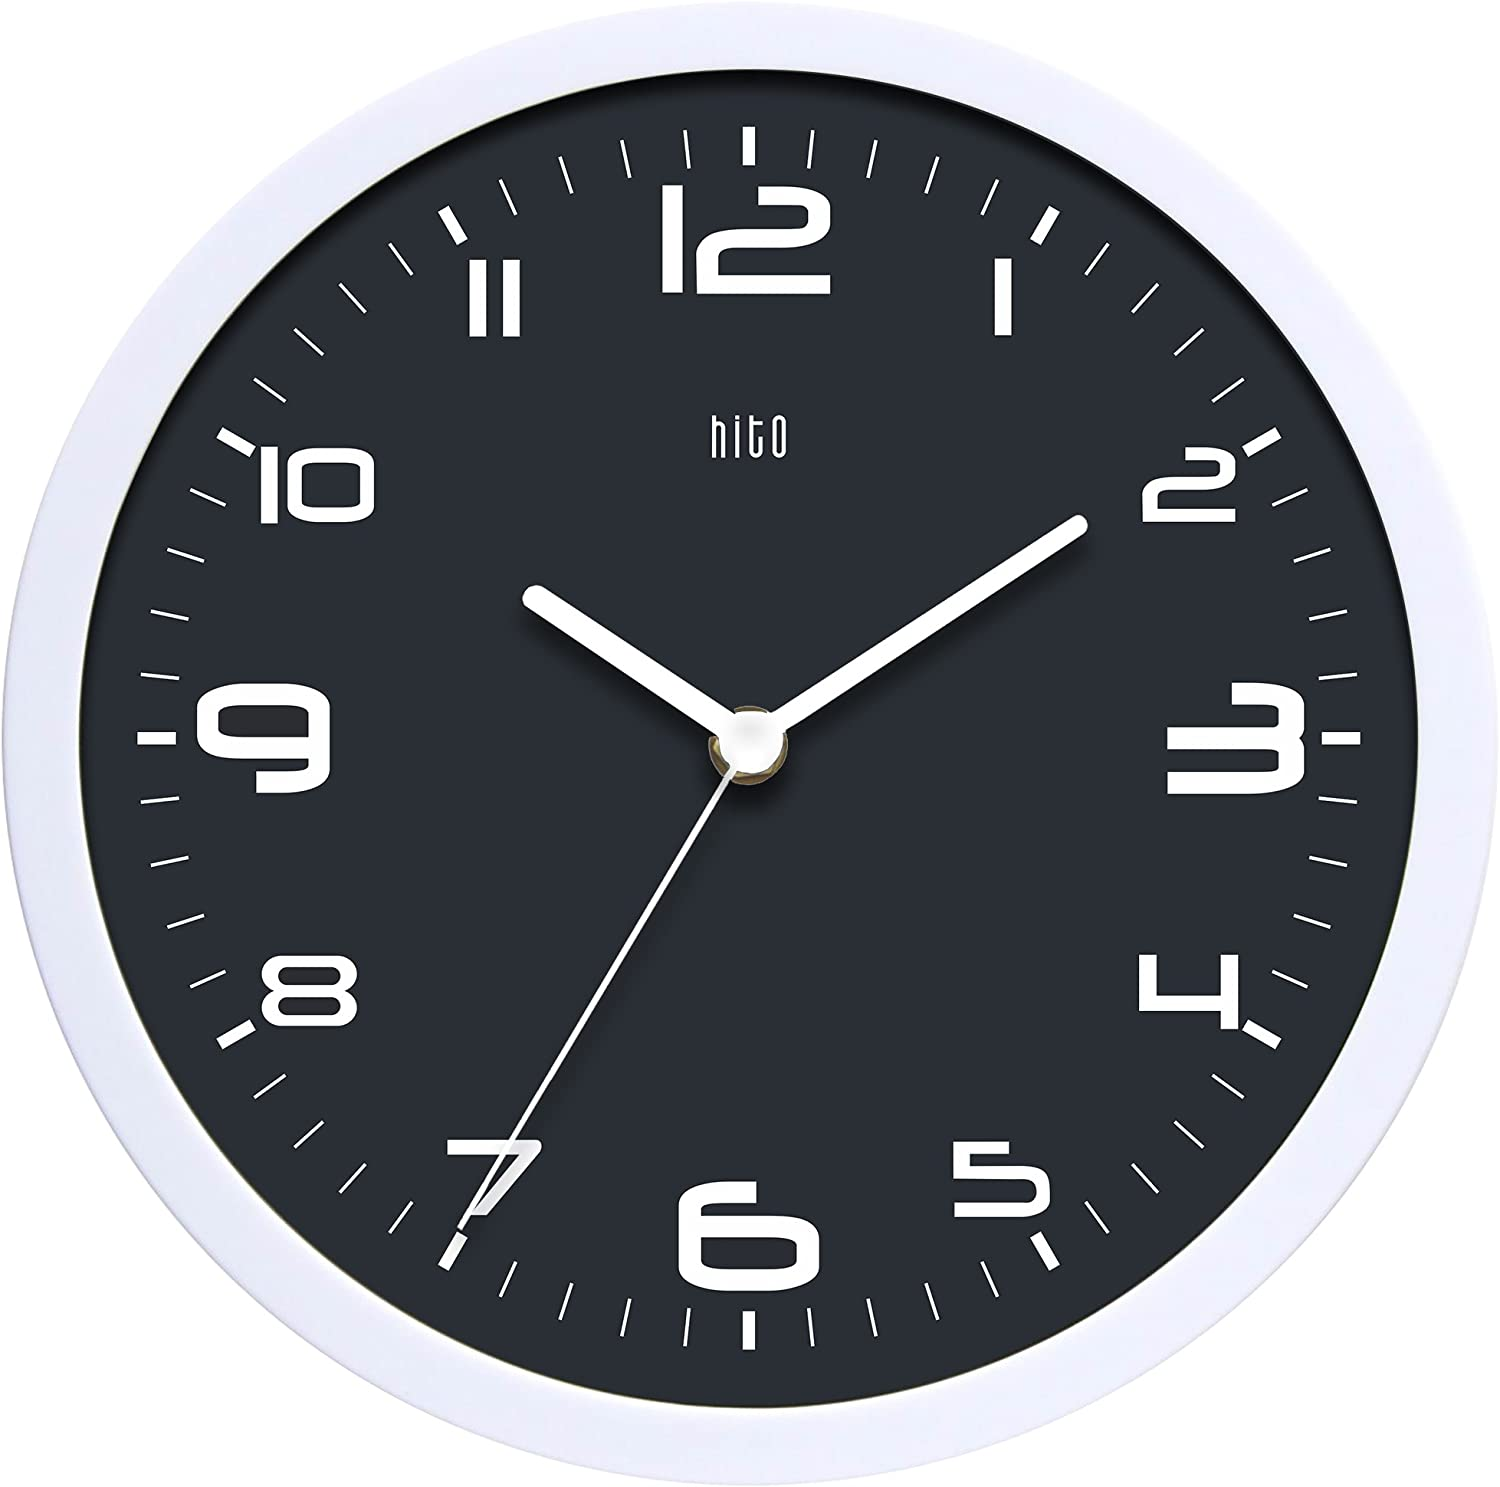 A Picture of Hito Silent Kids Wall Clock to better elaborate Best Silent Wall Clocks